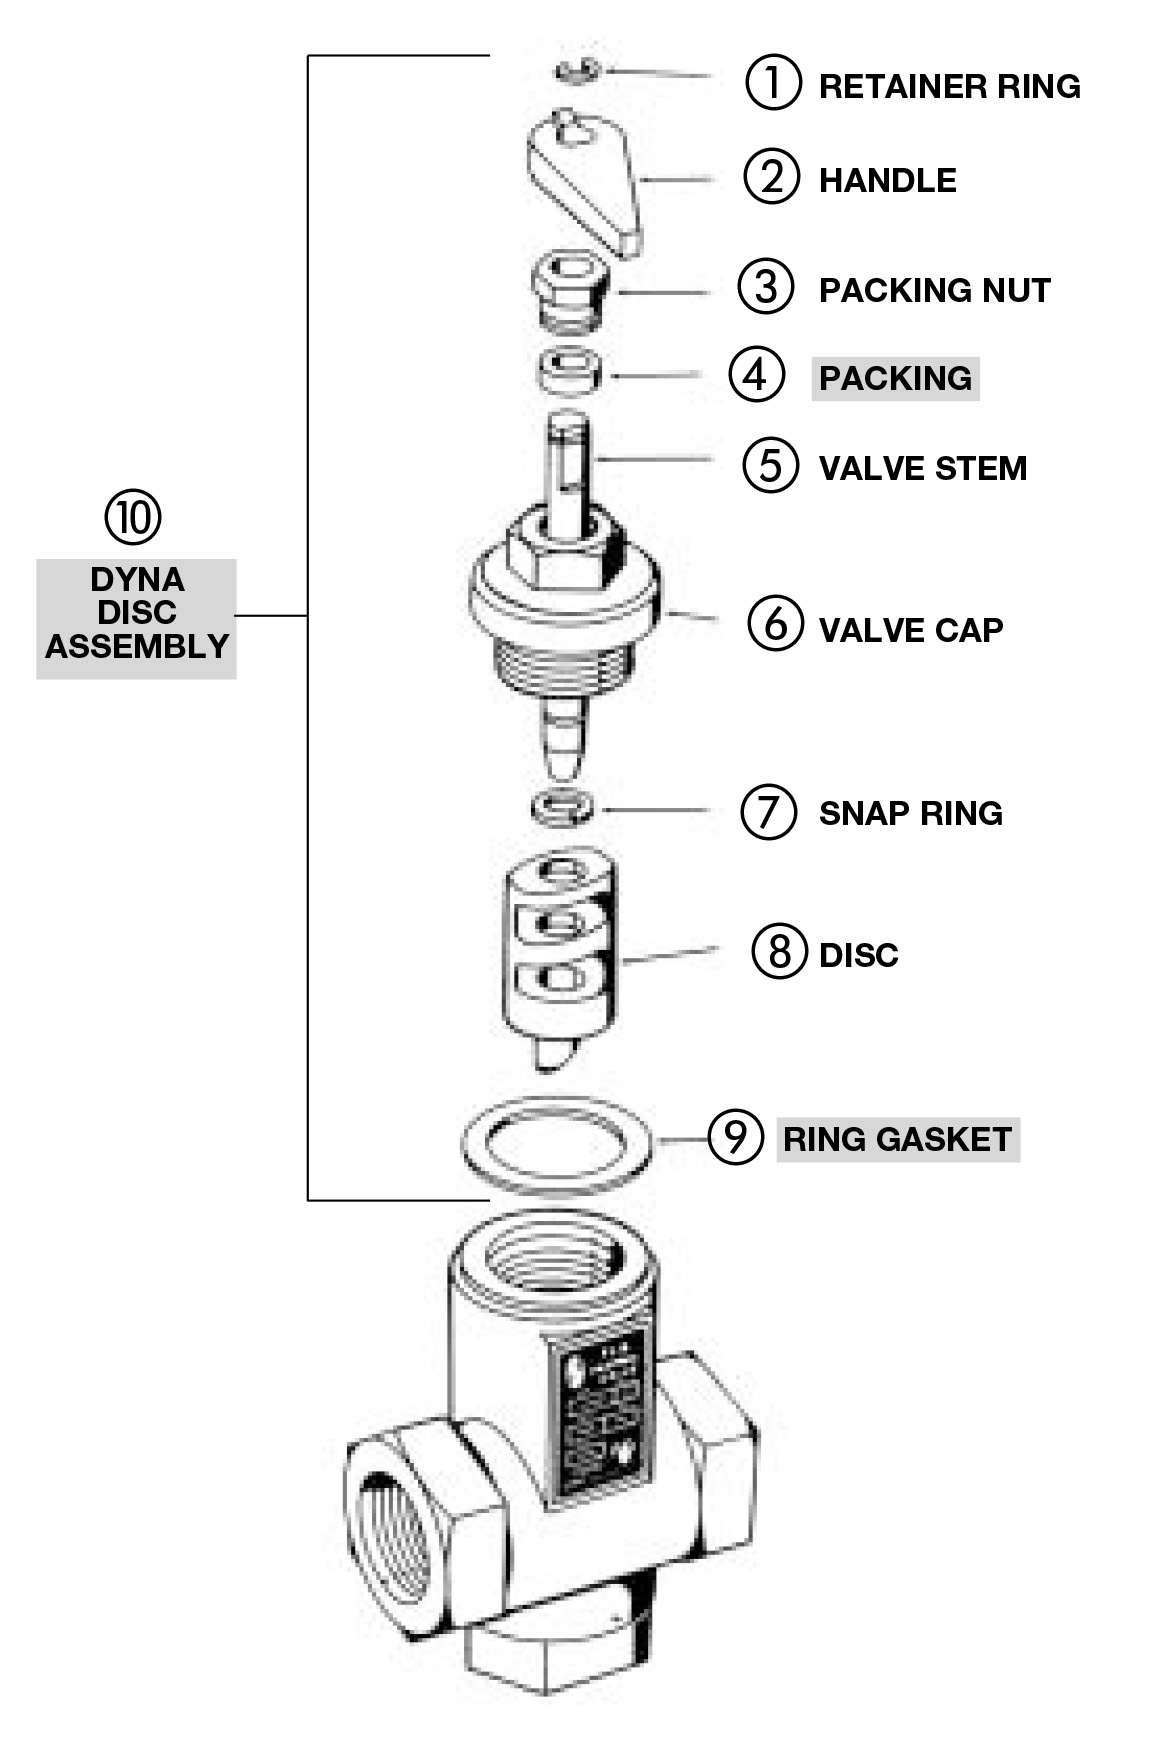 State Water Heater Wiring Diagram together with 1081000 as well Mercruiser Alpha One Wiring Diagram besides Hot Water Heater Wiring Schematic in addition Wiring Diagram For Thermostat On Hot Water Heater. on state water heater thermostat wiring diagram